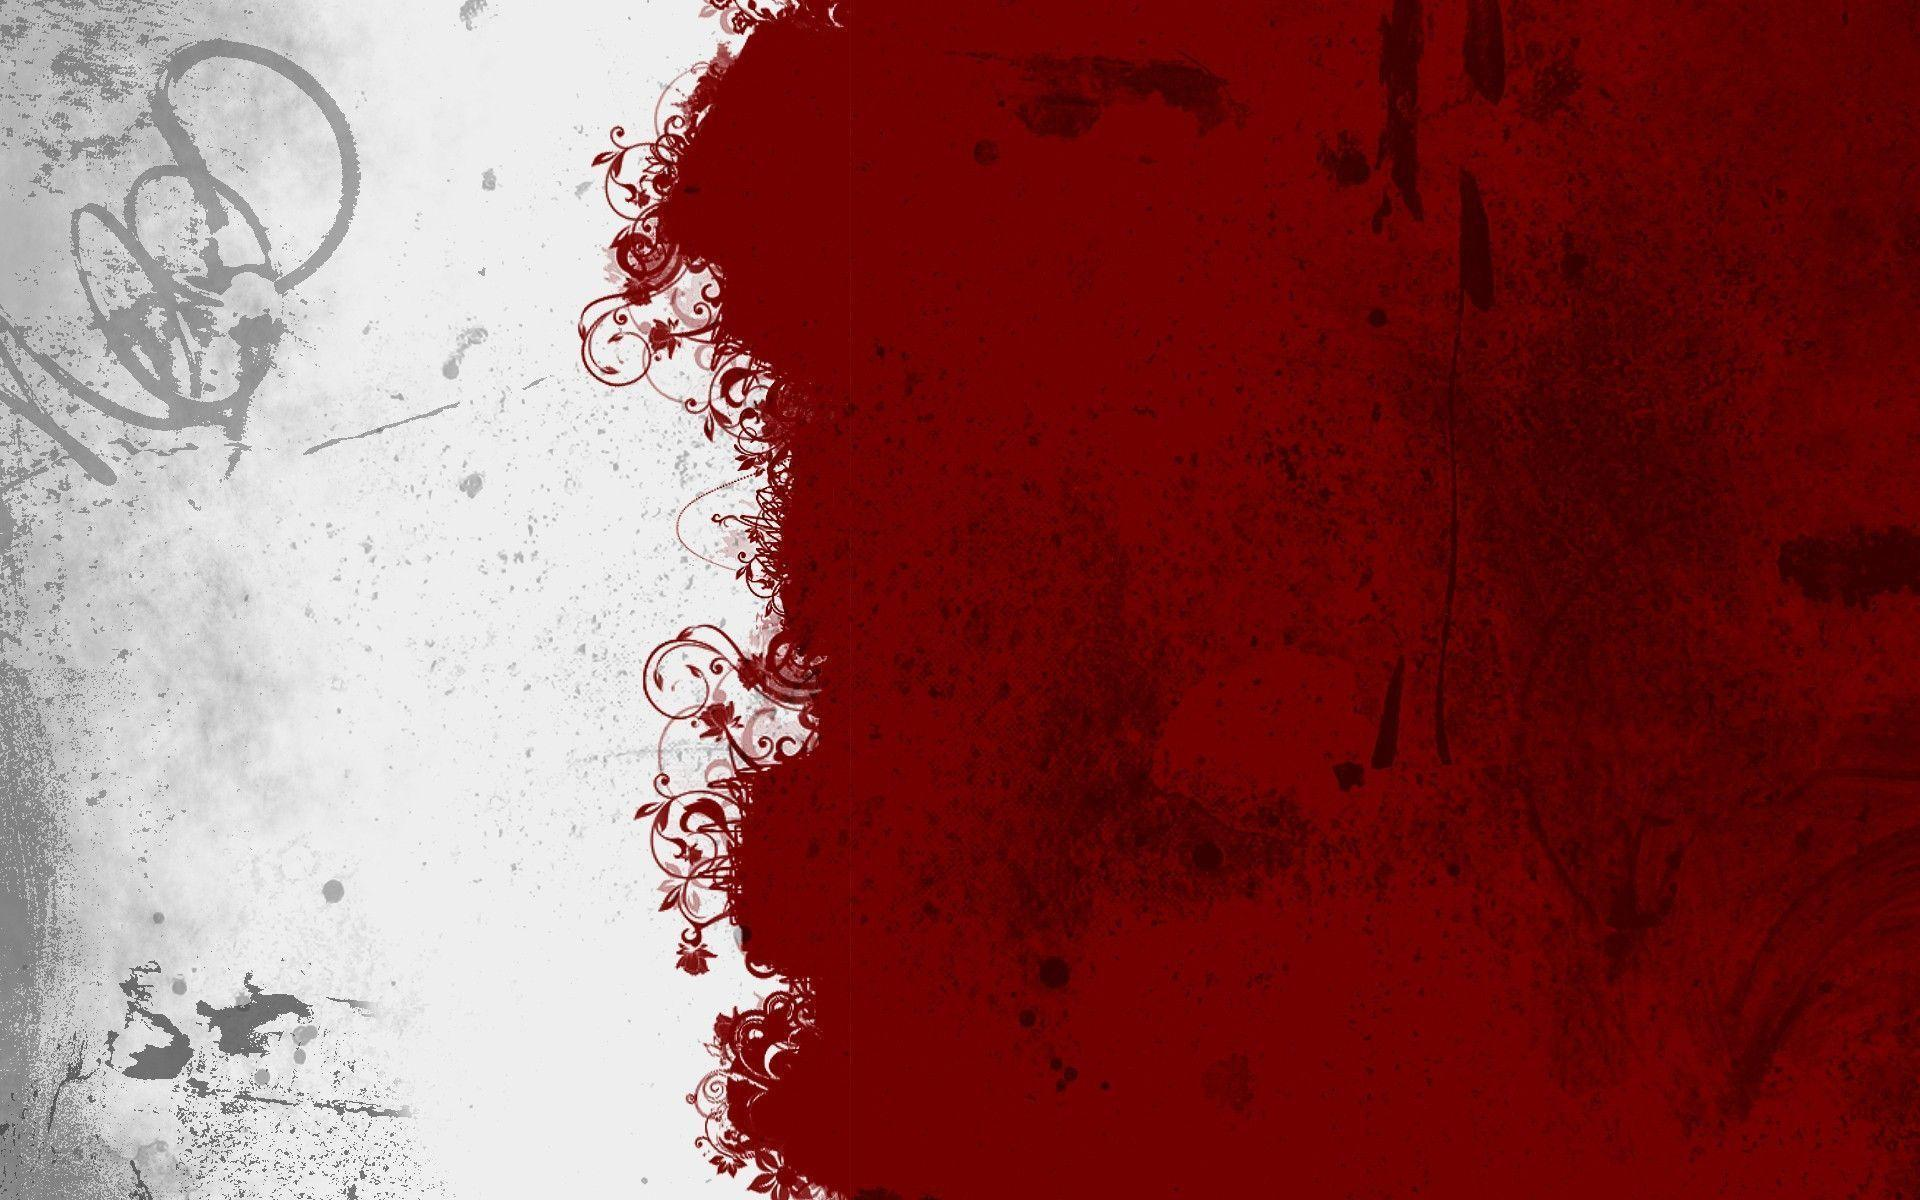 red textured background hd - photo #34